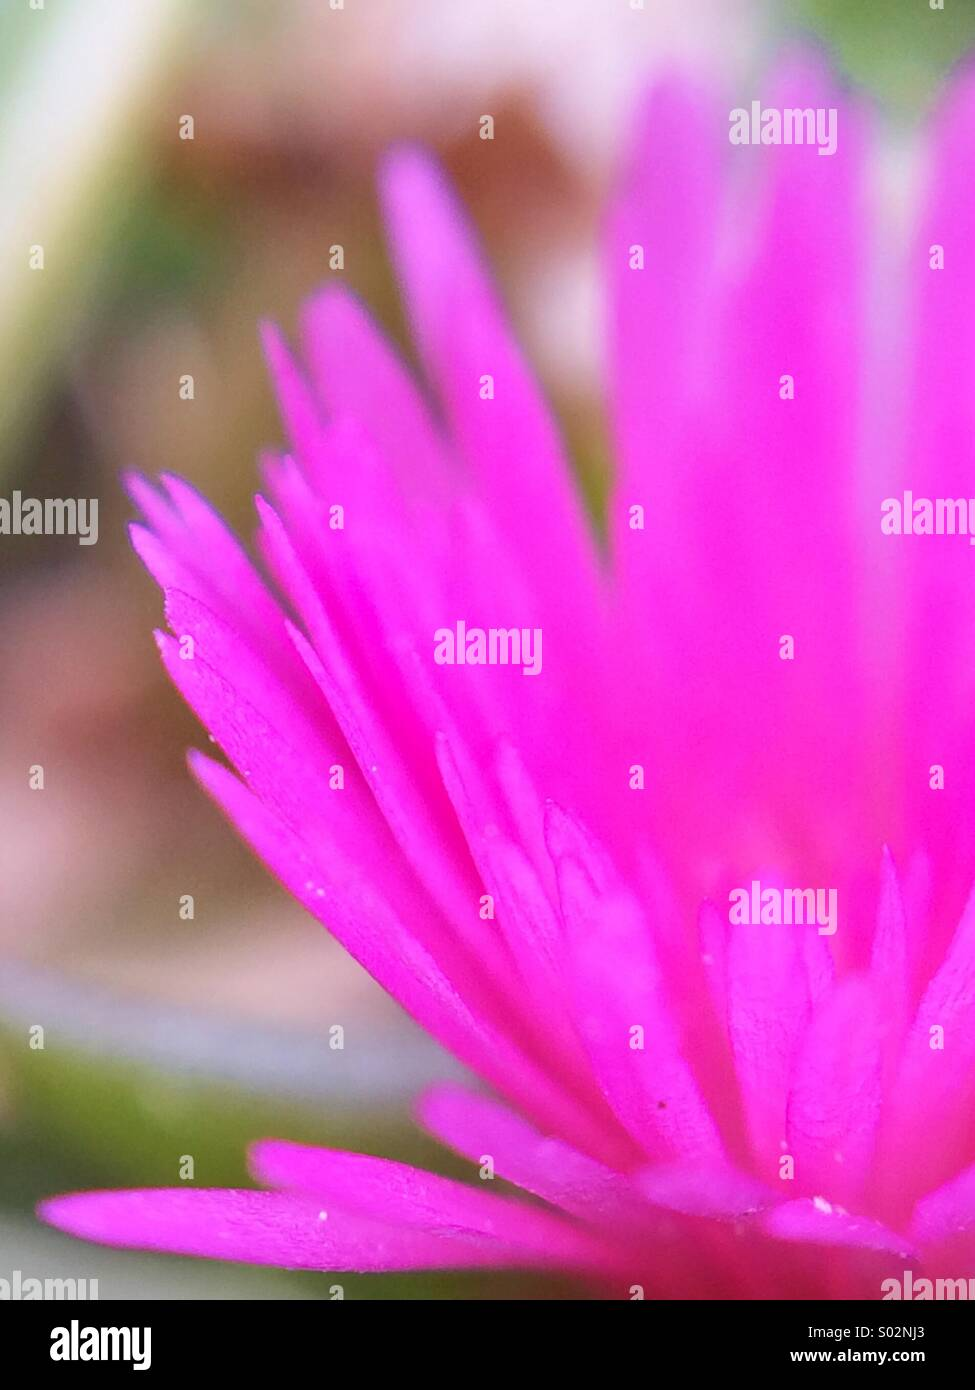 Macro view of a pink flower with multiple petals. - Stock Image